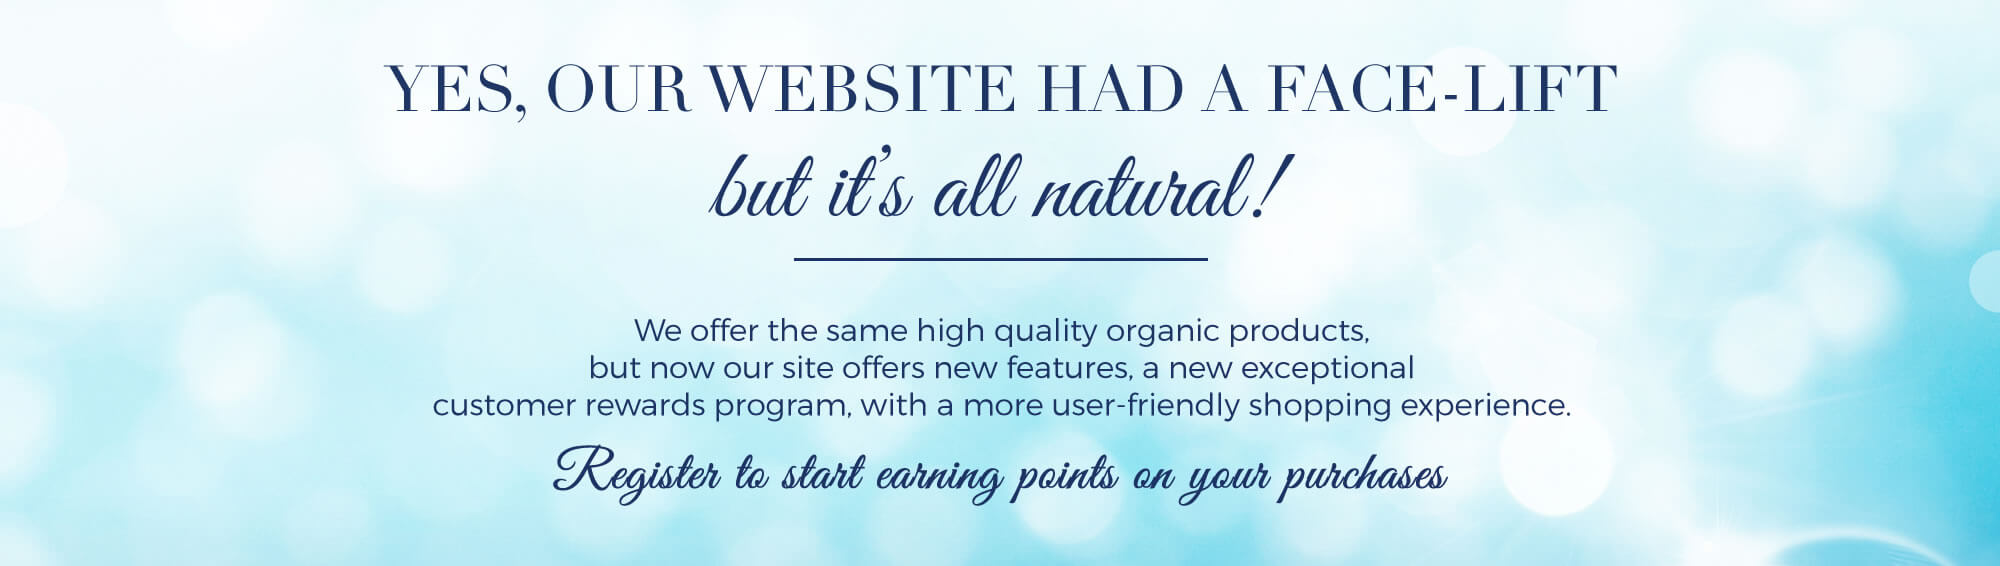 Yes,our website had a face-lift